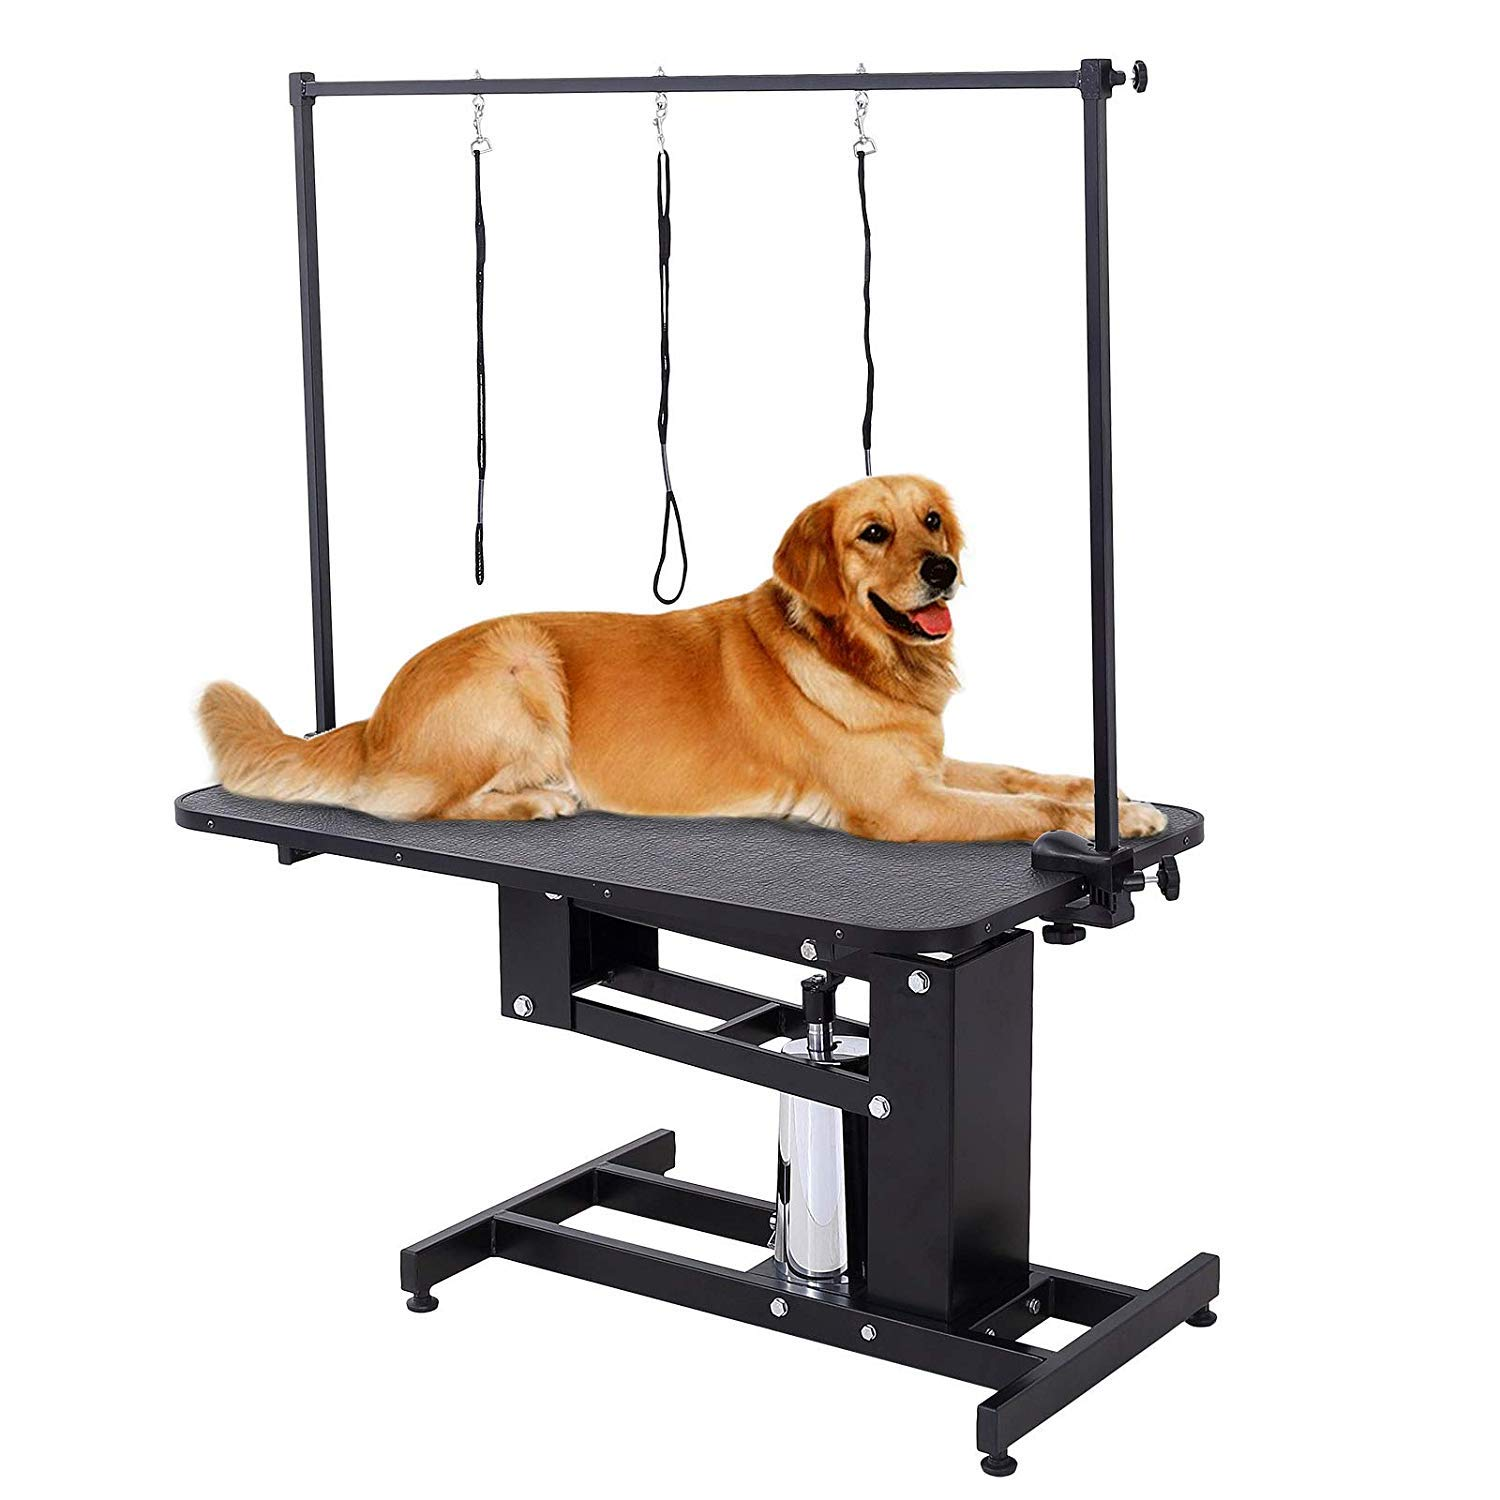 SUNCOO Hydraulic Dog Grooming Table Heavy Duty Z-Lift Pet Table with Arm Leash Loop Height Professional Adjustable Pump for Medium Large Dog 43.3'' L x 24'' W x 21.6-38.9'' H